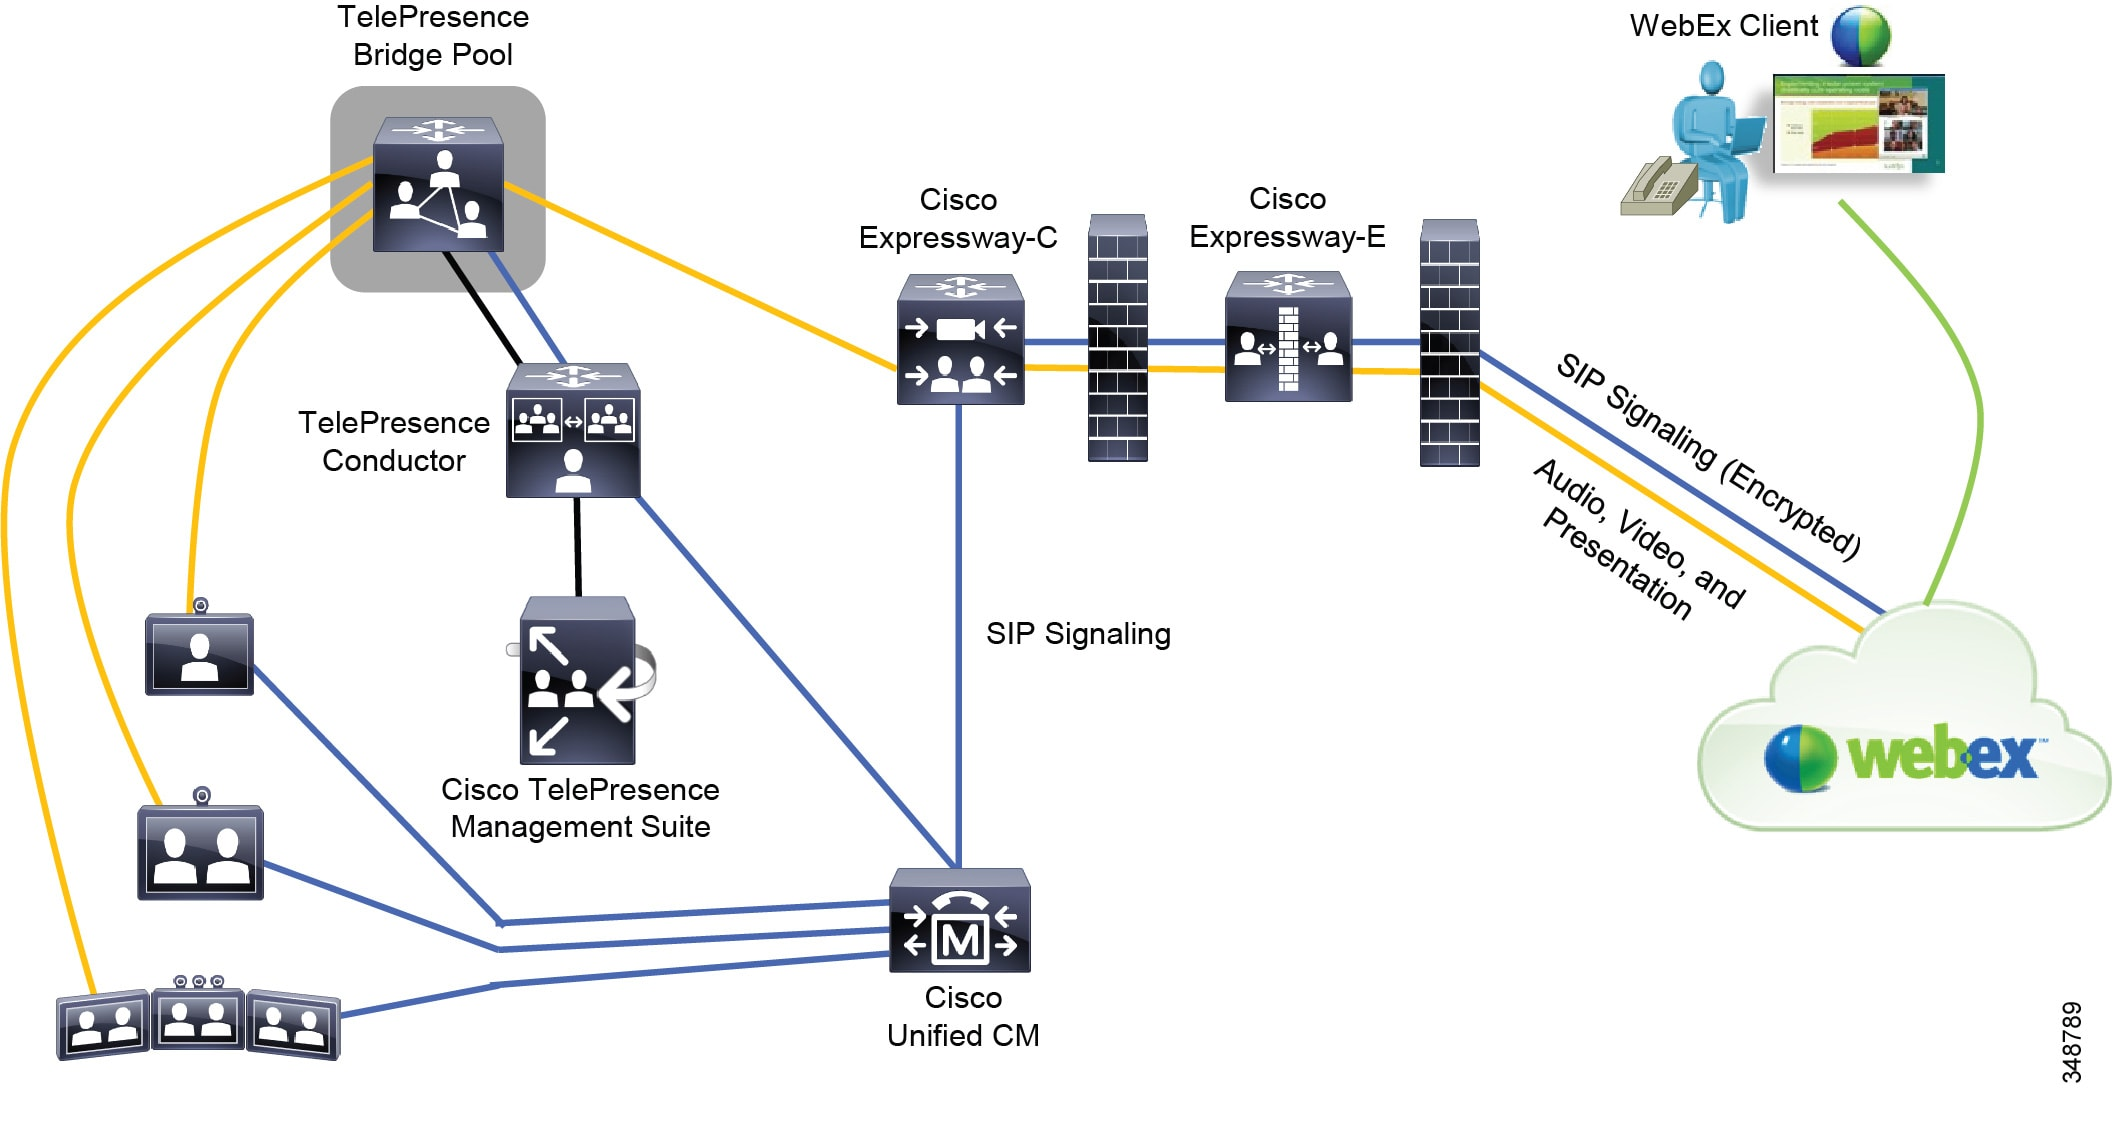 Cisco Collaboration System 11x Solution Reference Network Designs Through The Internal Connection In Switches To Switch Leg Traversal Calls Between Enterprise And Webex Cloud It Allows Signal Media Traverse External Firewalls